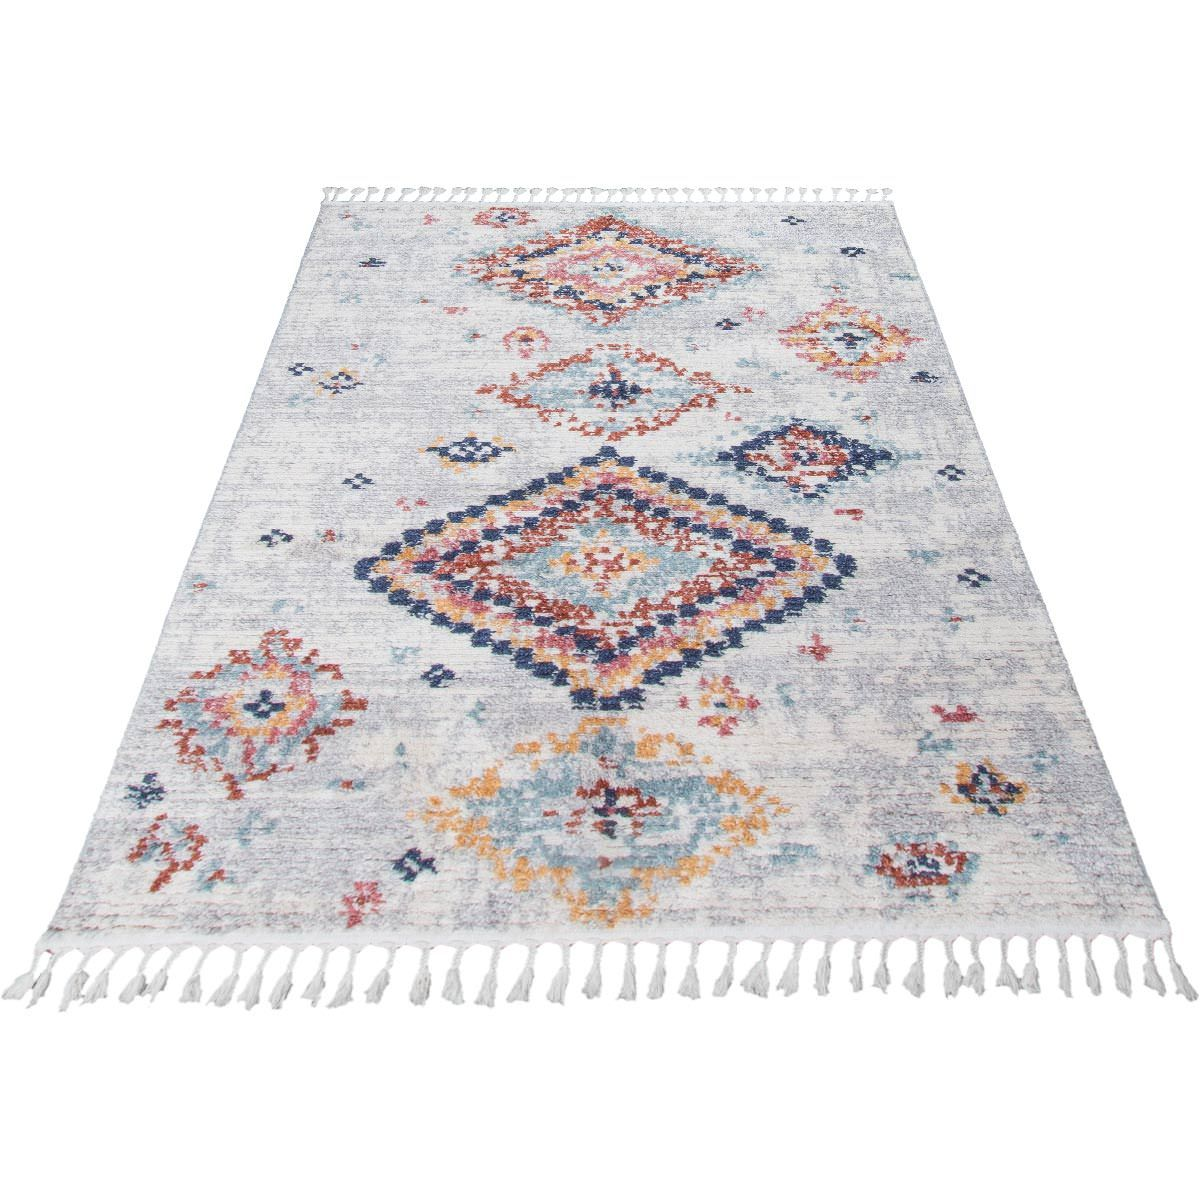 Diamond Rug 05 Multicolor 6